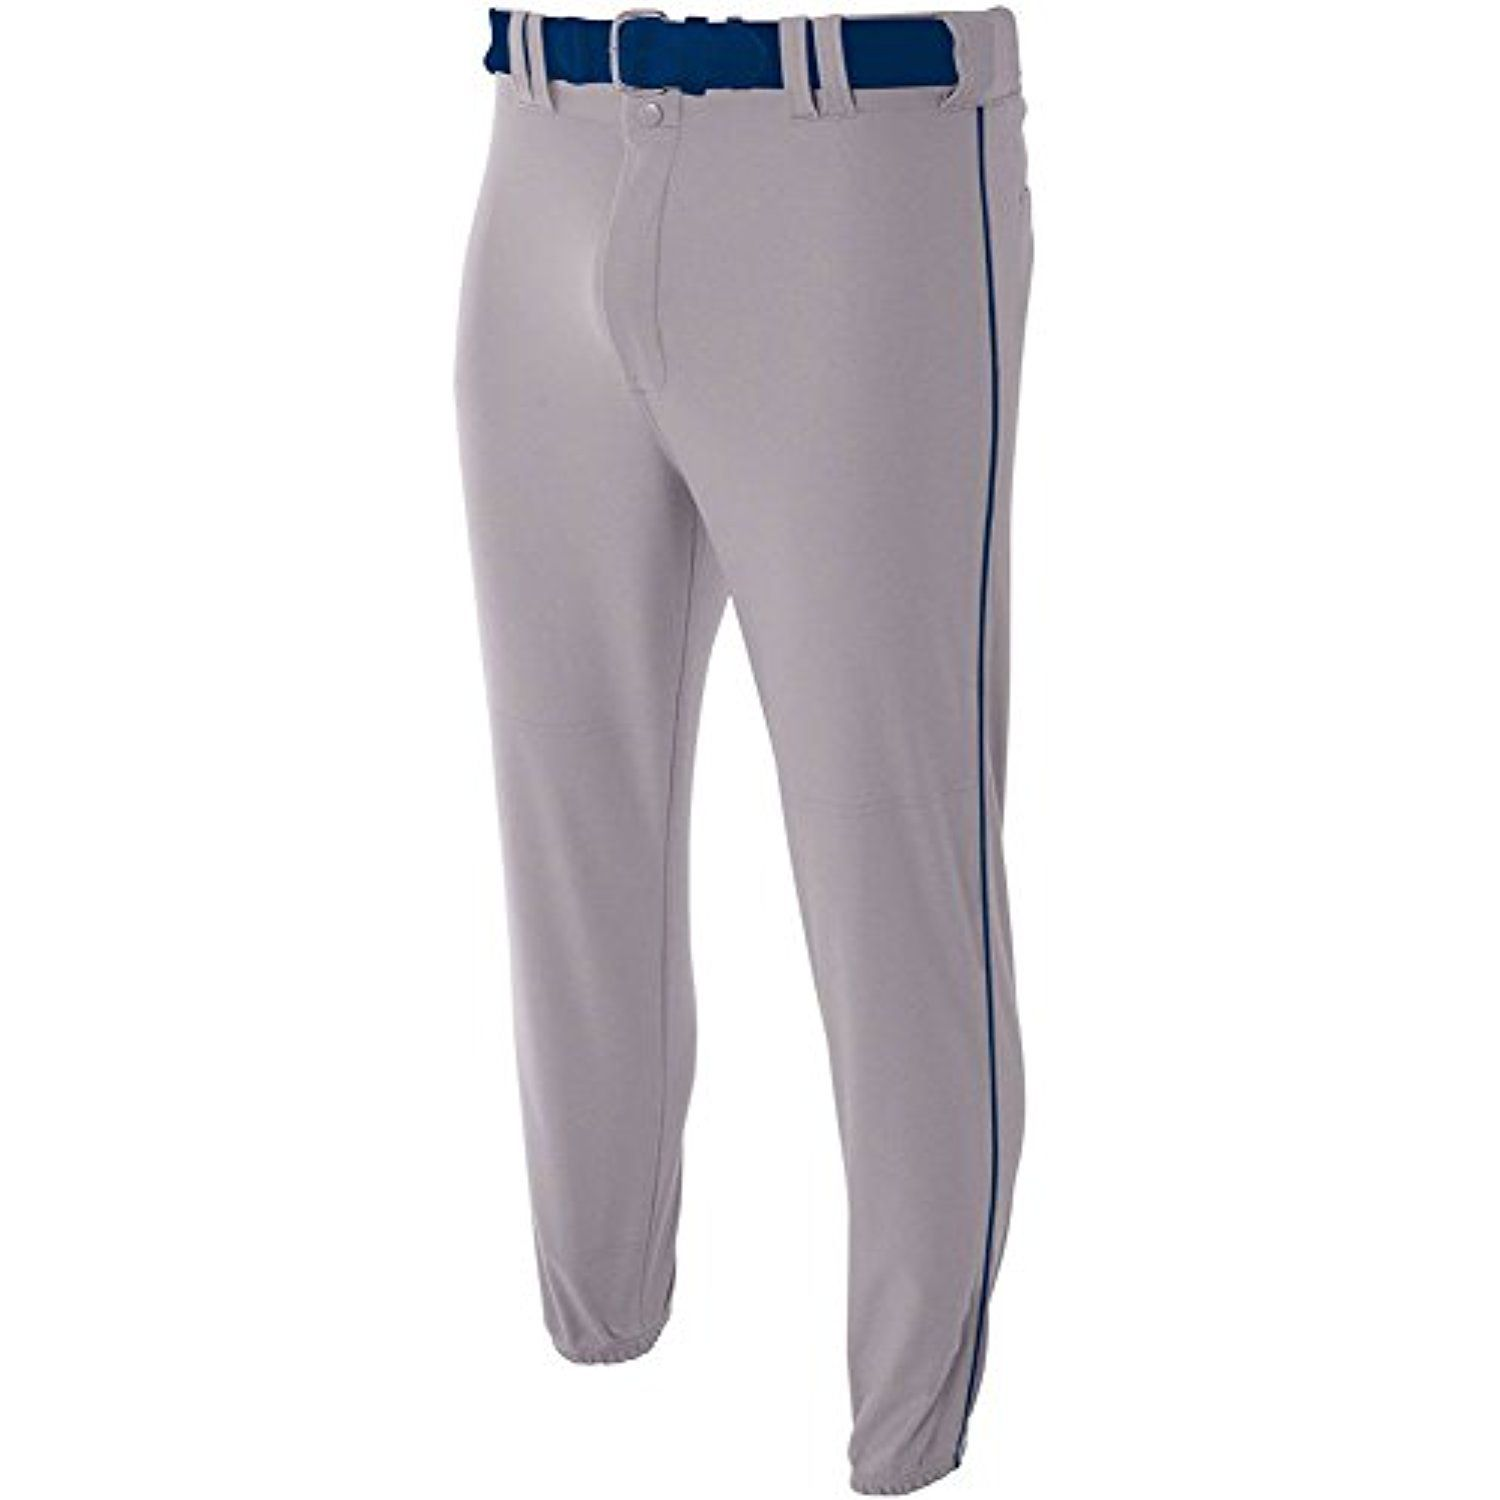 A4 Youth Pro Style Elastic Bottom Baseball Pants You Can Find Out More Details At The Link Of The Image This Is An Af Chic Sweatshirt Baseball Pants Pants